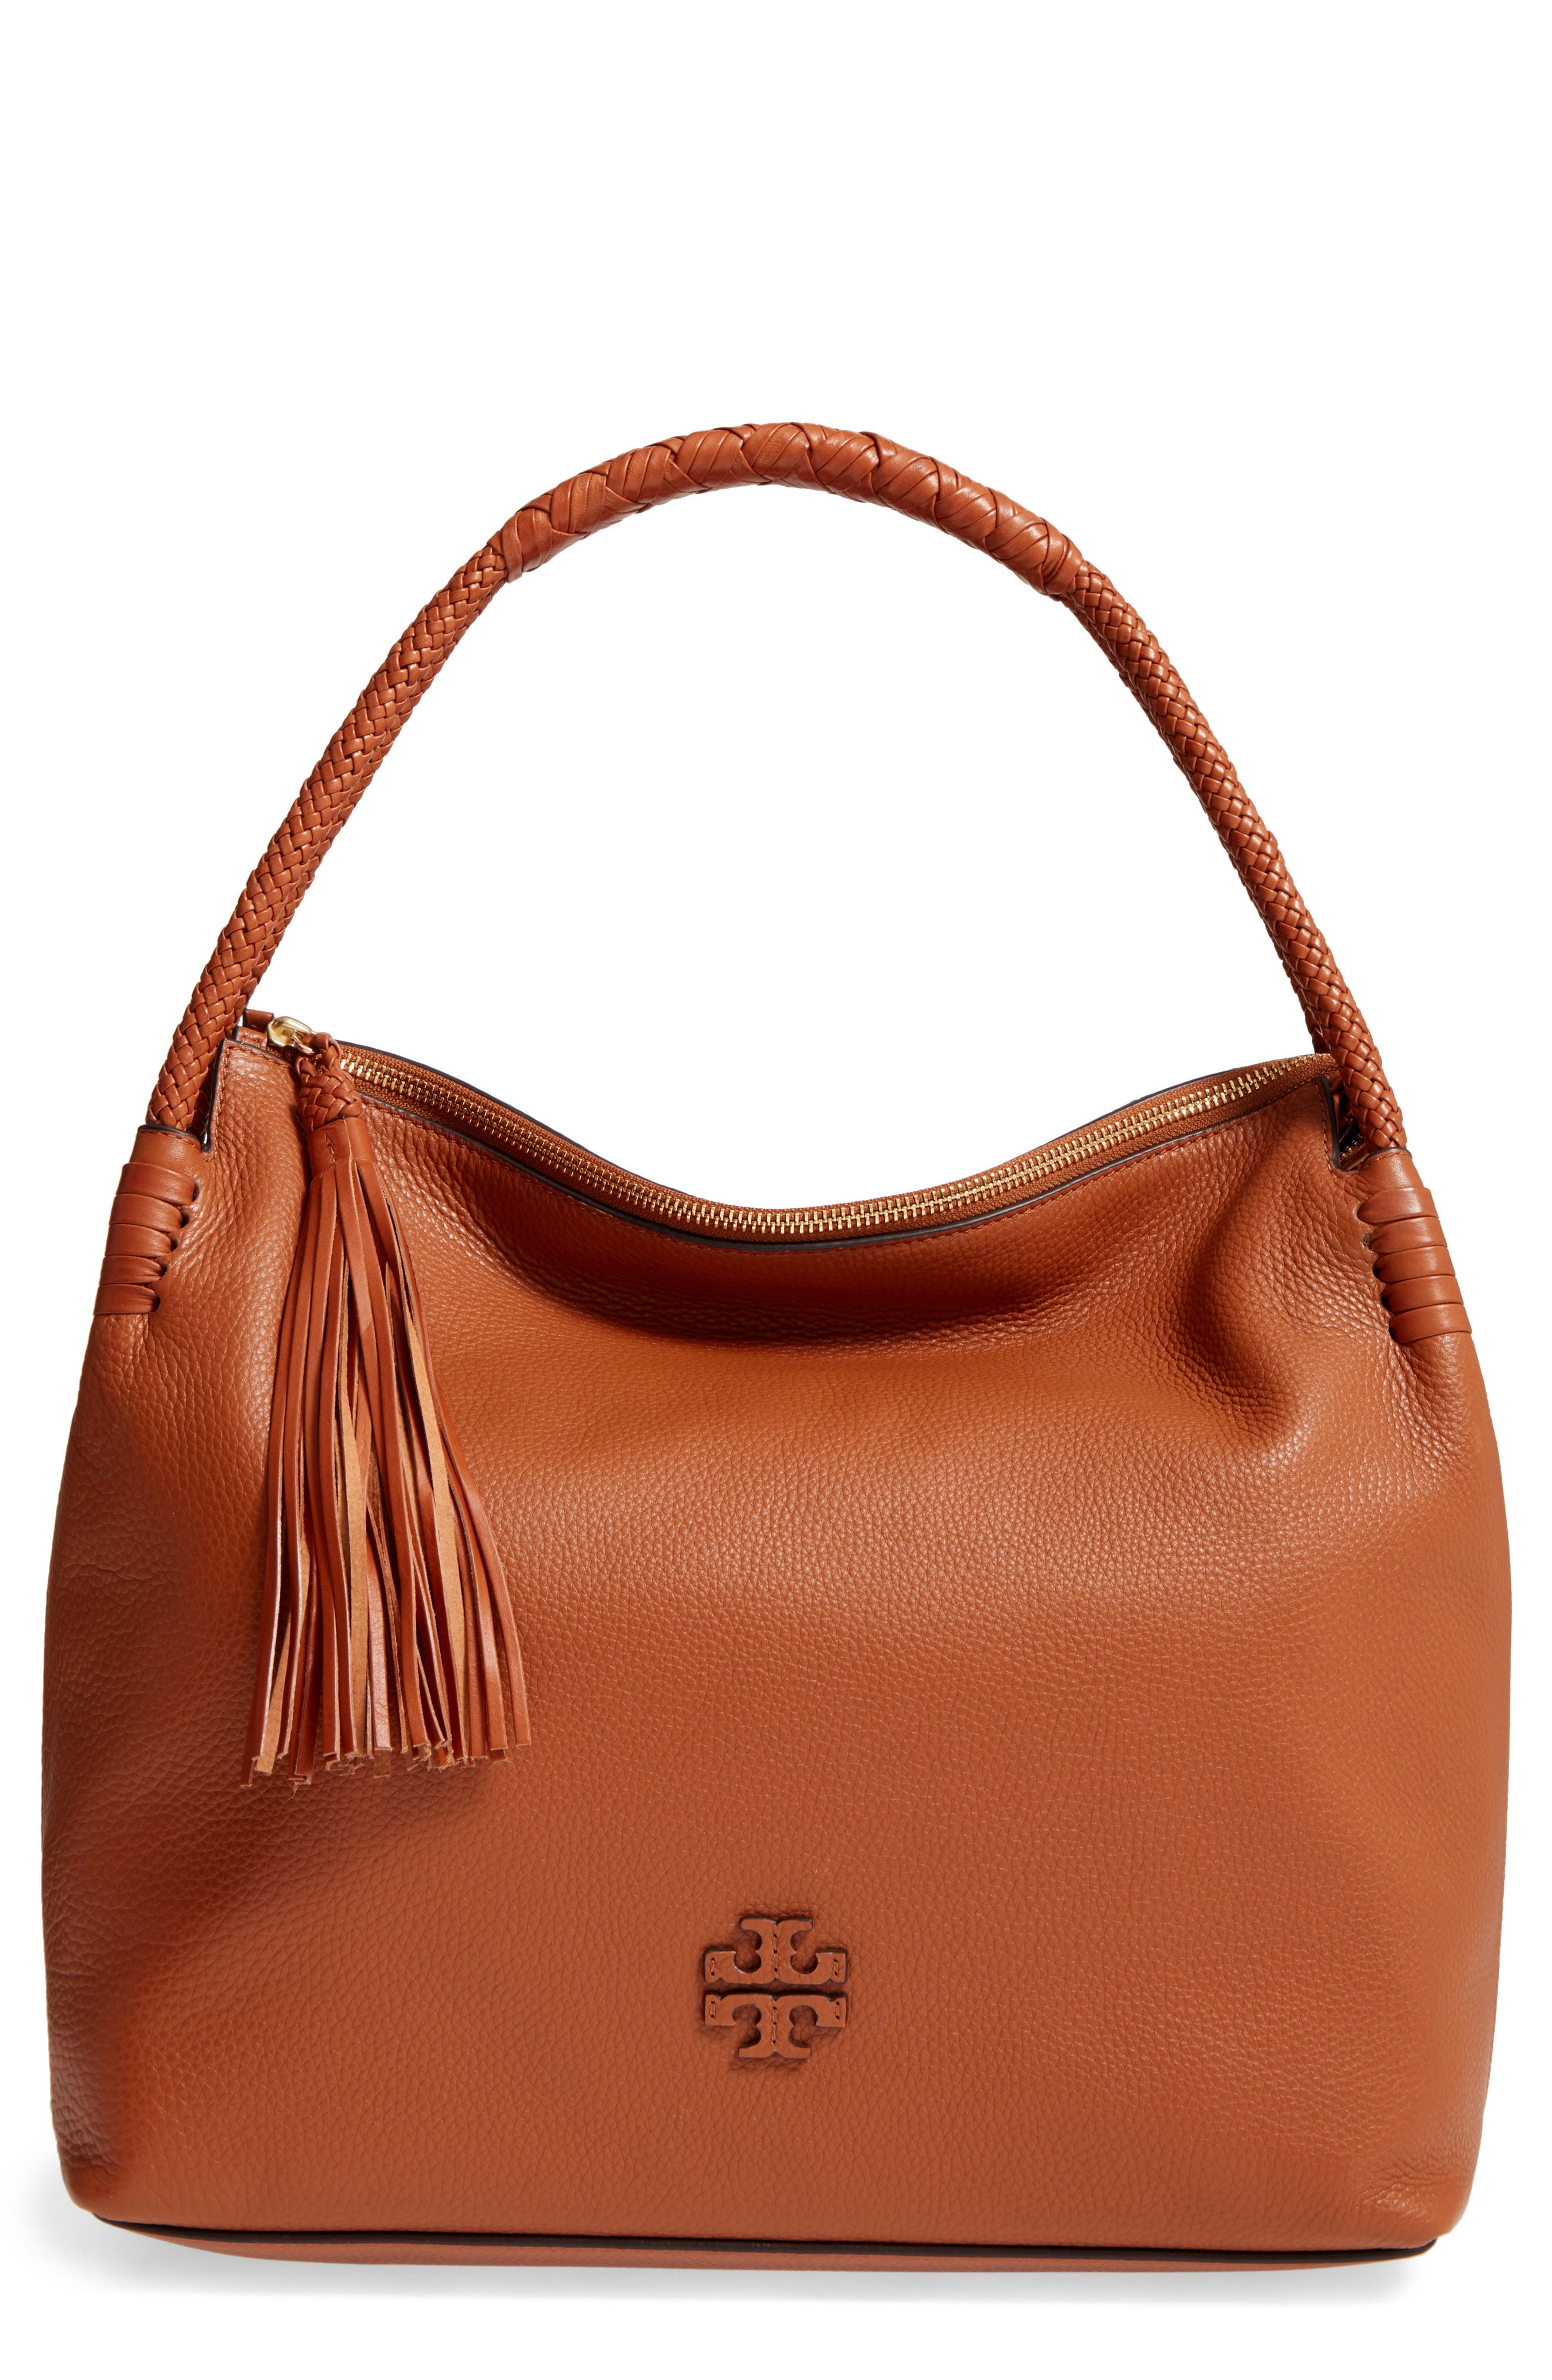 Taylor Leather Hobo Bag,                         Main,                         color, Saddle